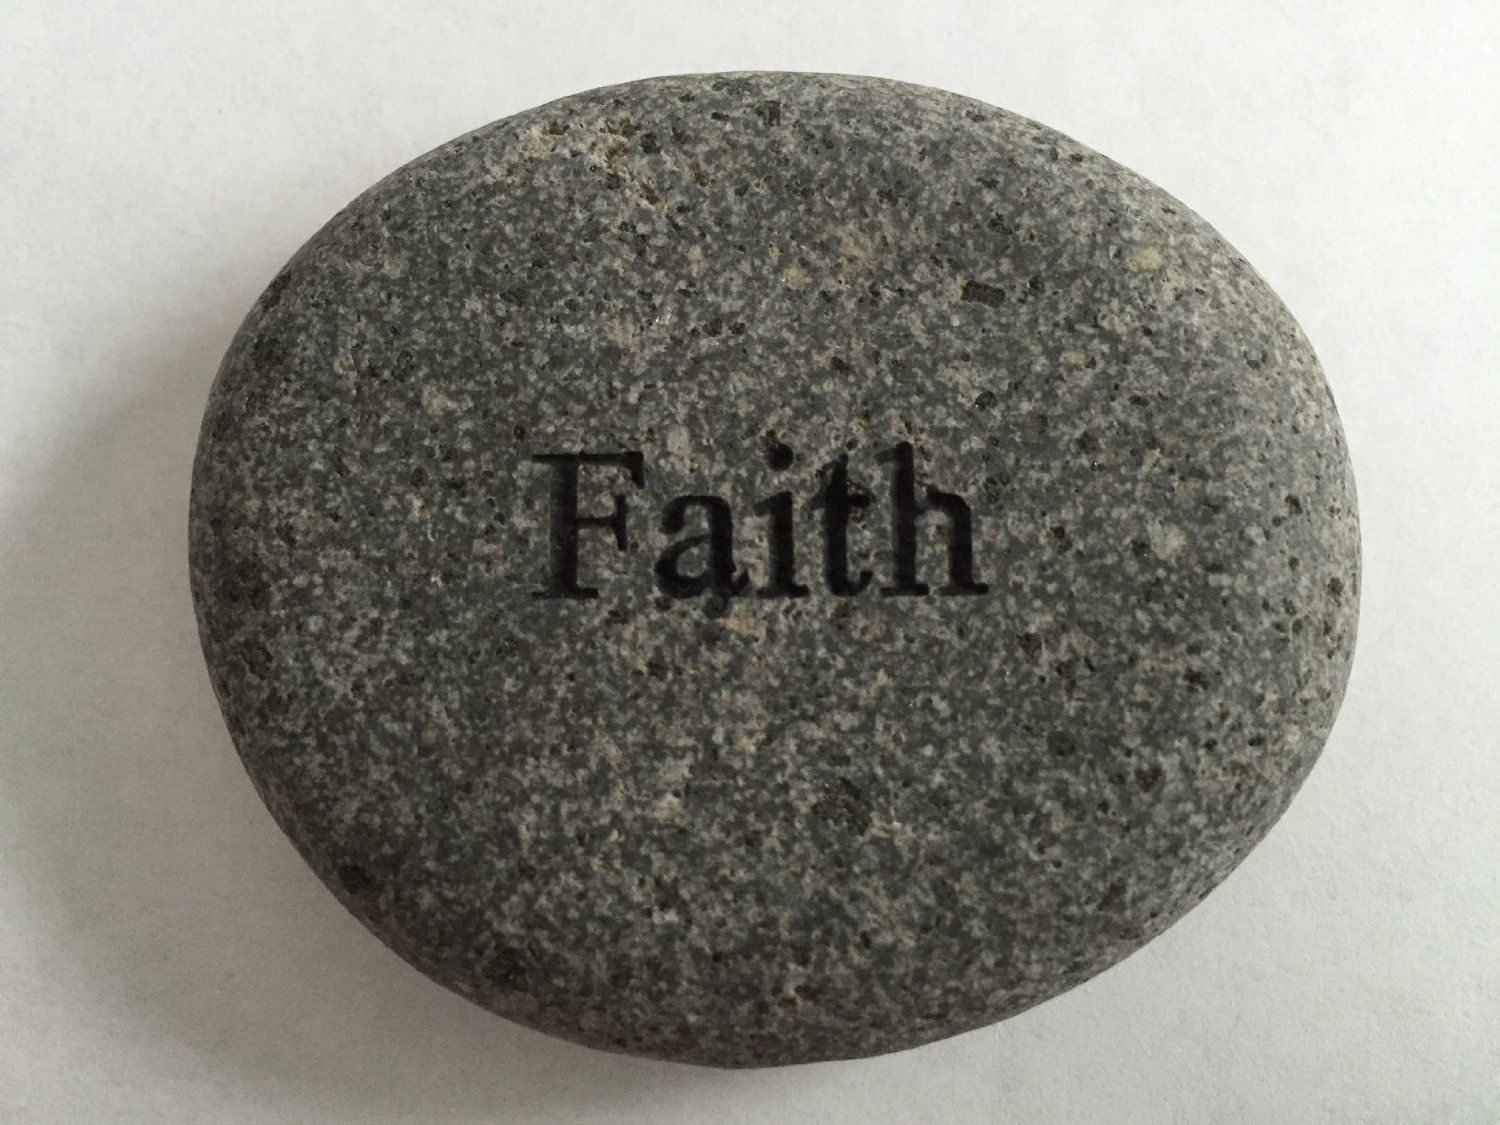 BLOG-FAITH